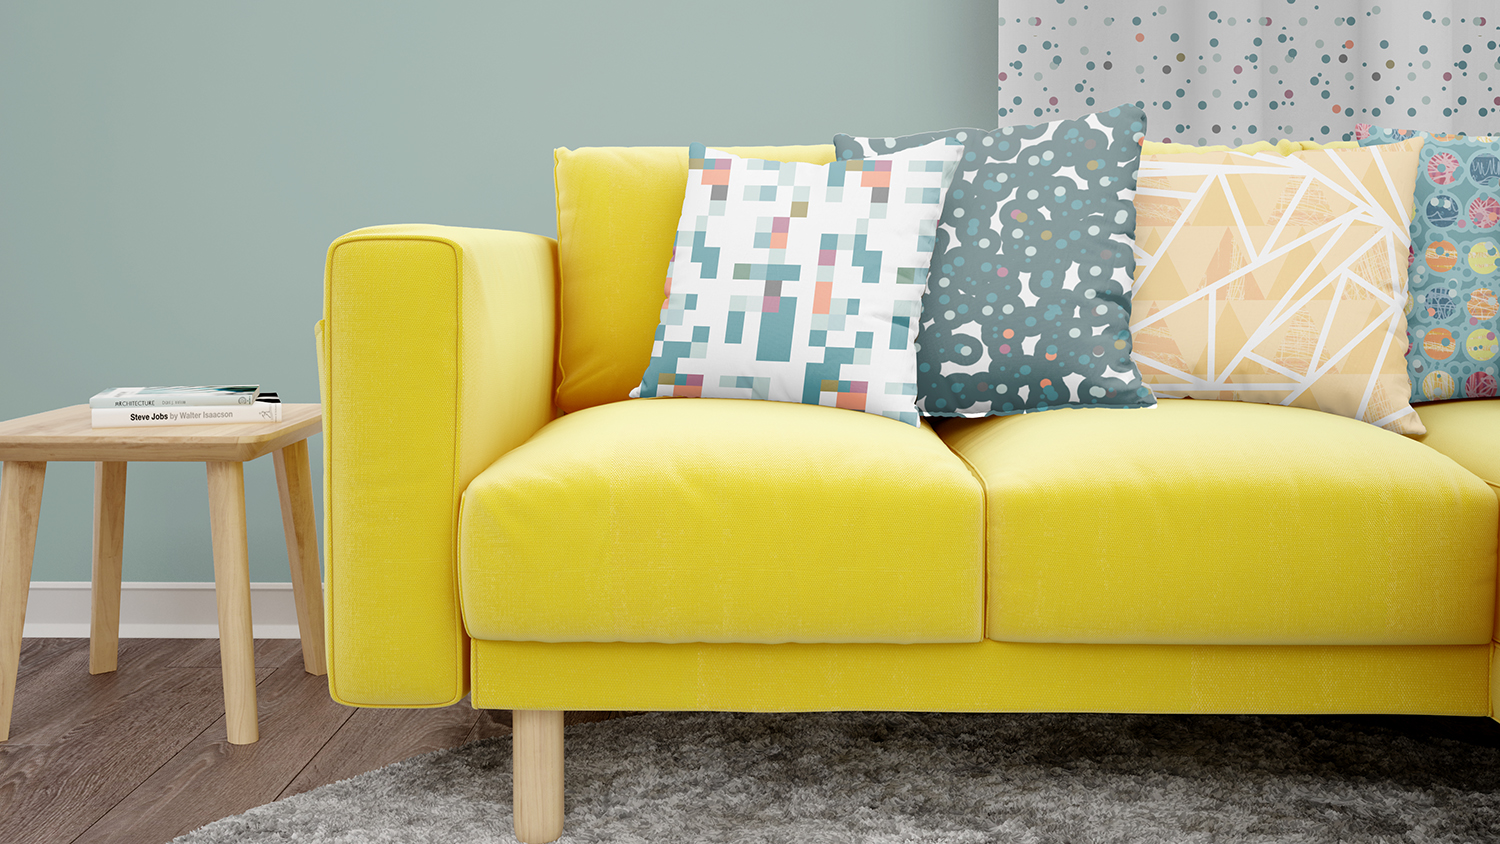 textile design mock up of cushions on a sofa